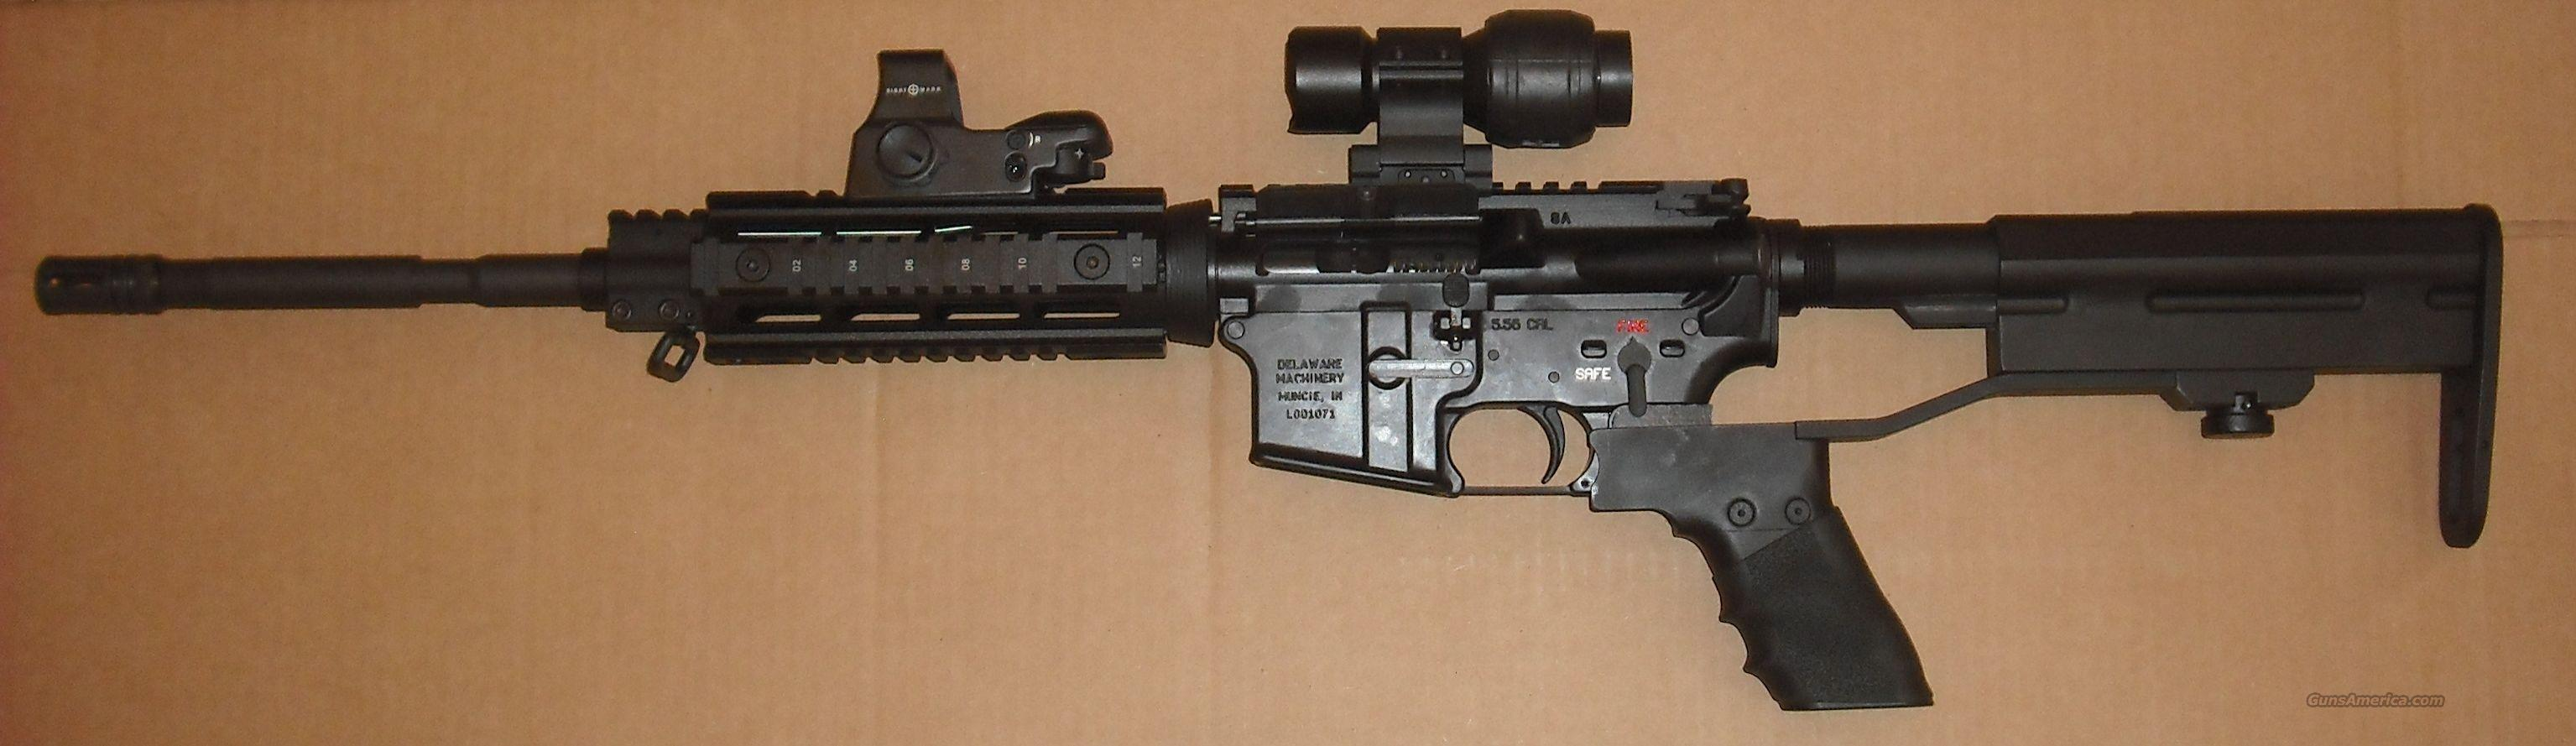 AR-15 LEFT HAND with optics  Guns > Rifles > AR-15 Rifles - Small Manufacturers > Complete Rifle